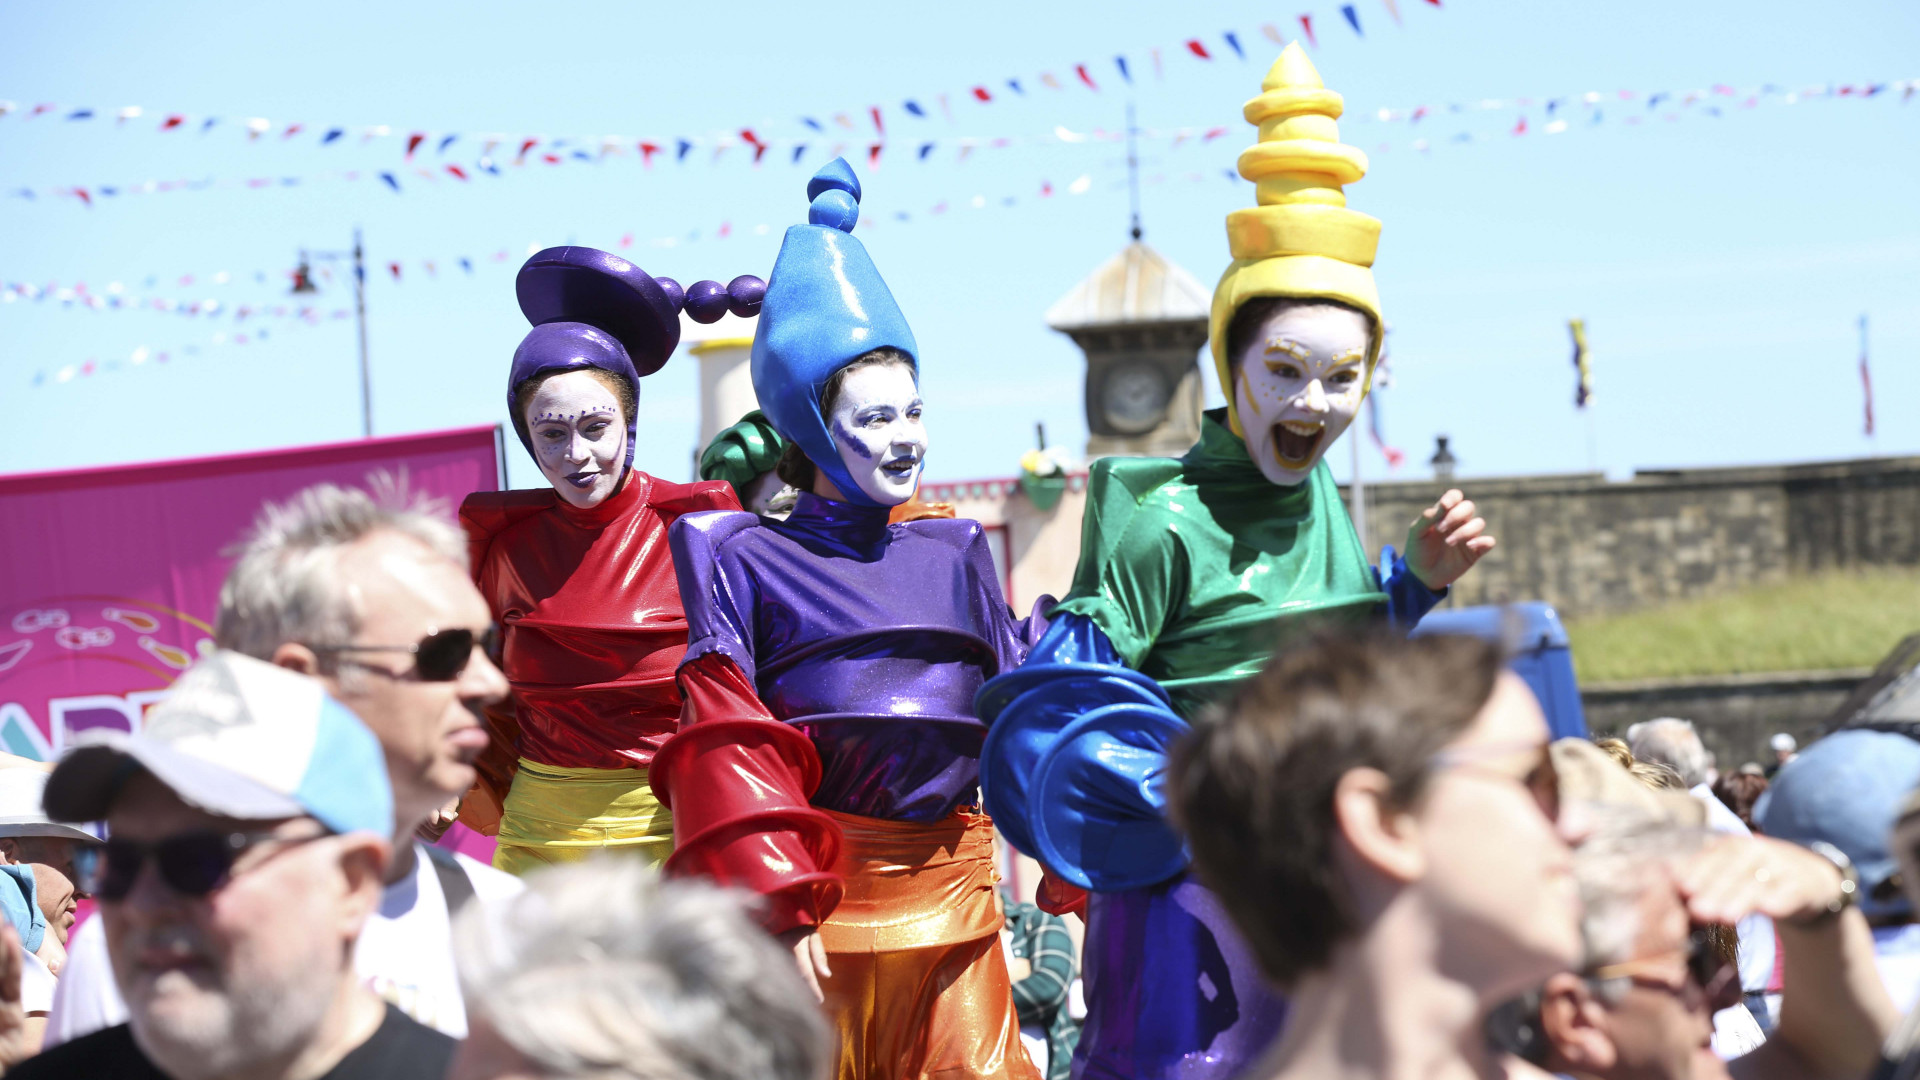 Everyone gets involved in Mouth of the Tyne festival